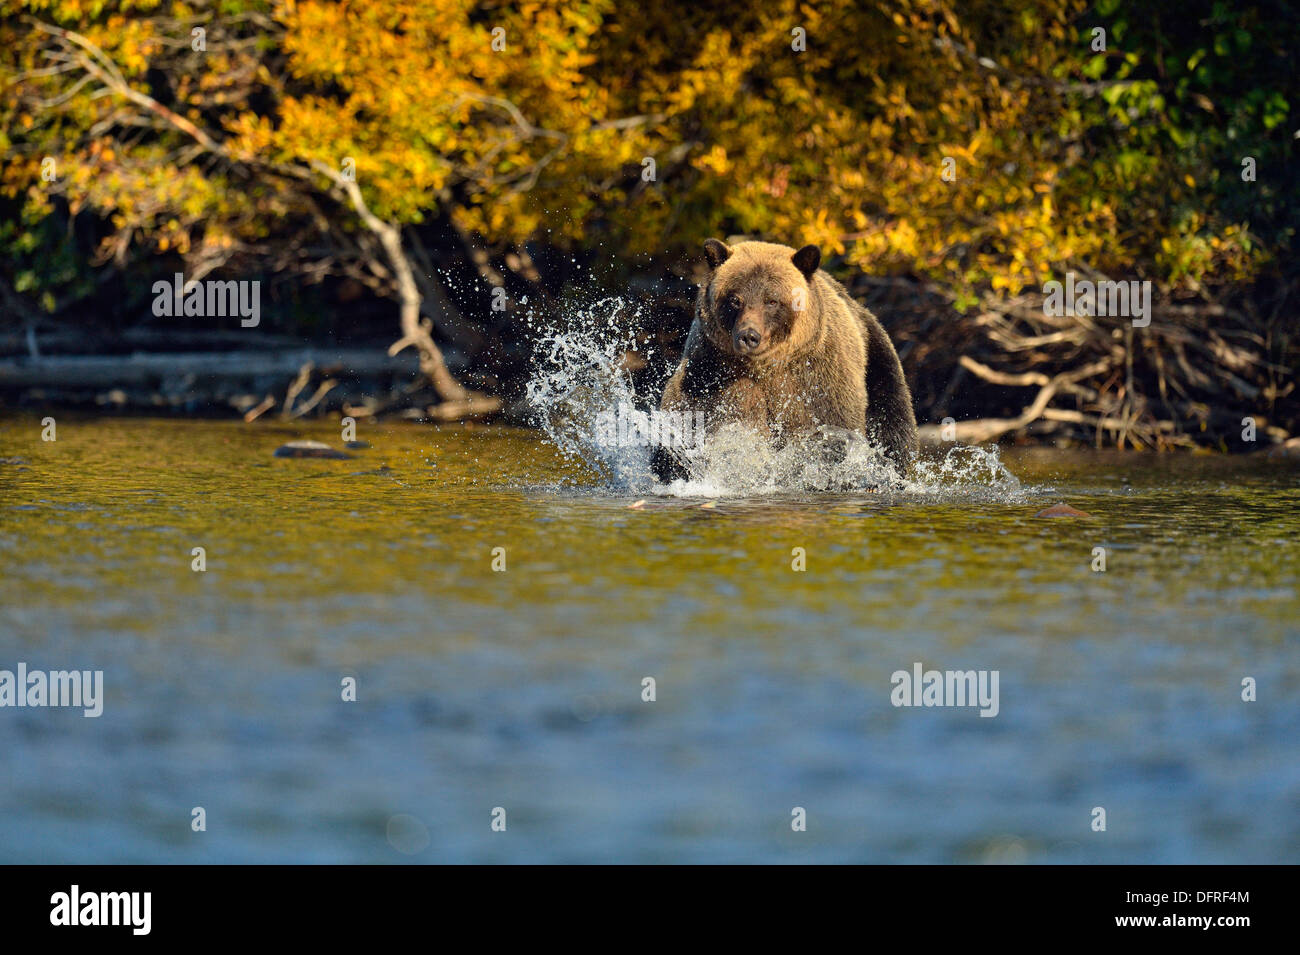 Grizzly bear, Ursus arctos, Catching spawning sockeye salmon in a salmon river, Chilcotin Wilderness, BC Interior, Canada - Stock Image